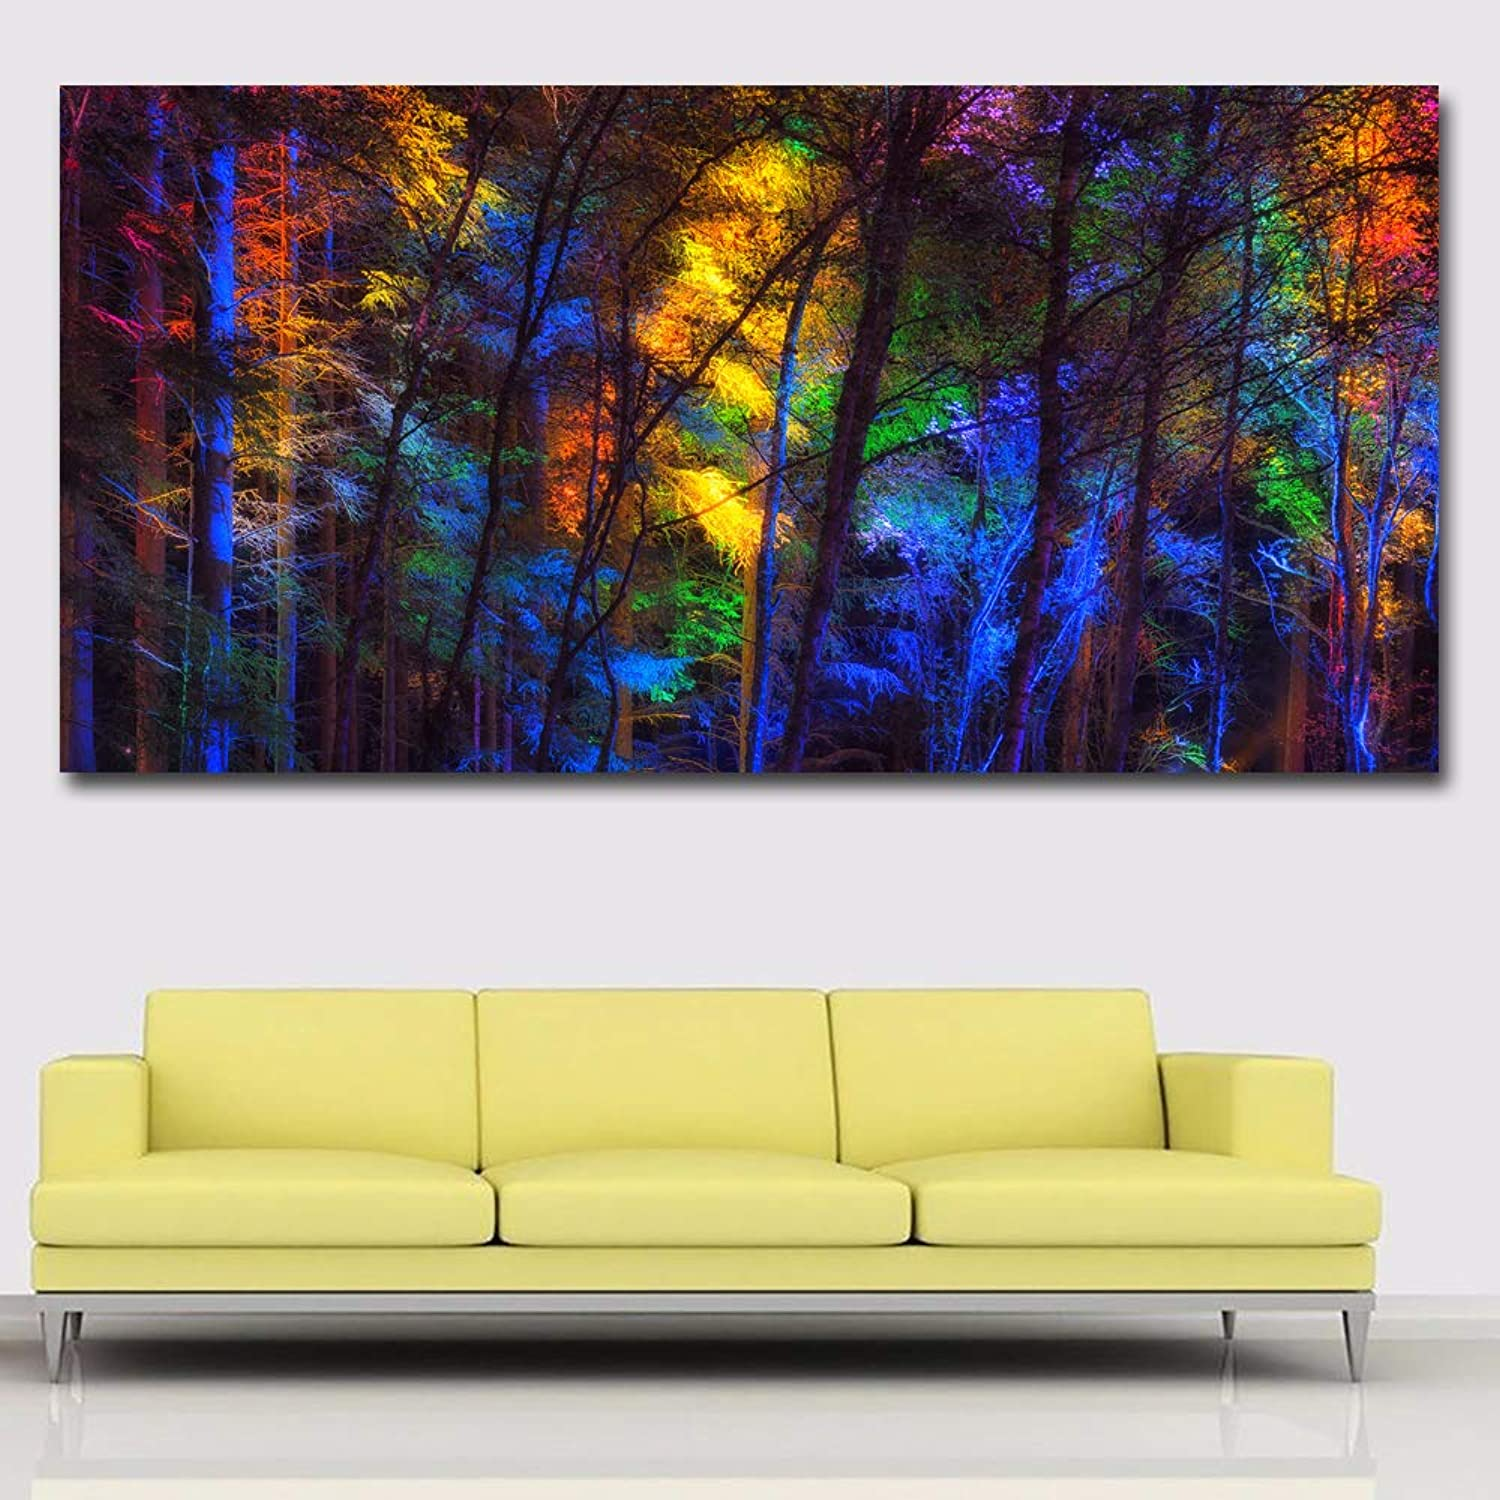 W15Y8 colorful Tree Forest Landscape Painting Wall Art Canvas Prints Posters For Living Room Modular Pictures 70X140Cm No Fram